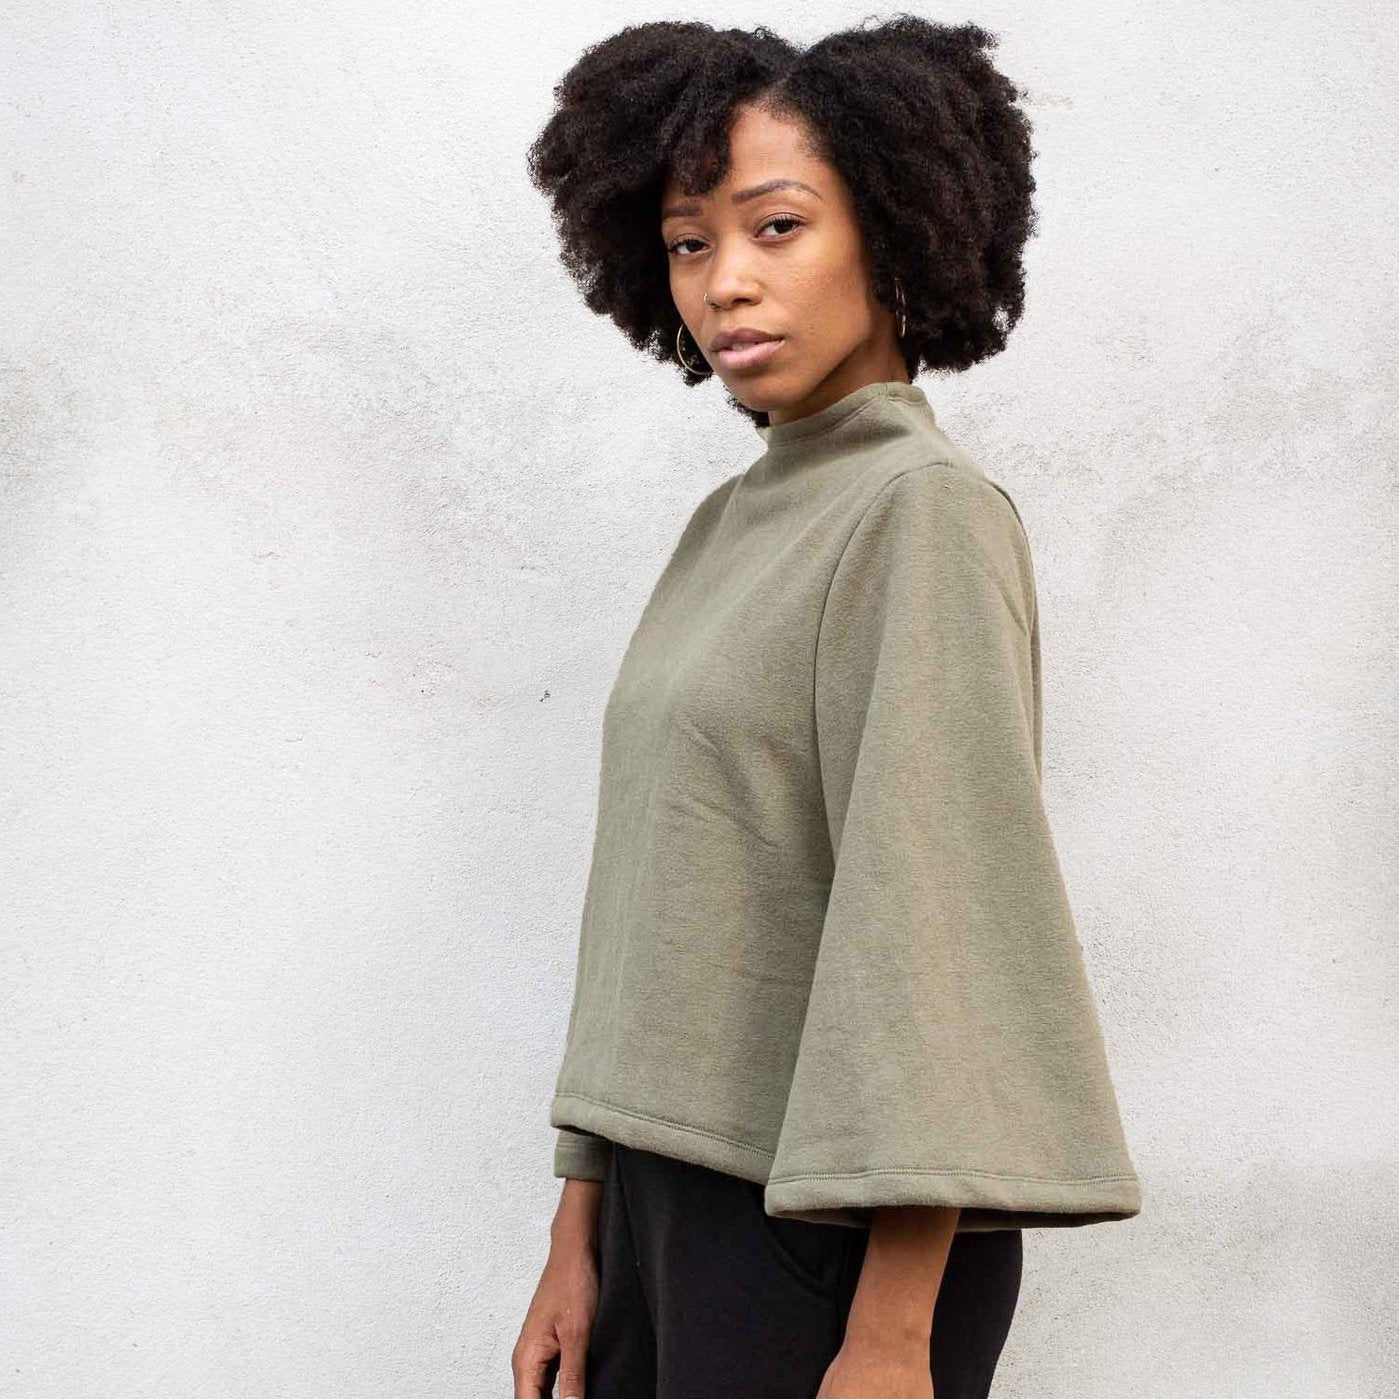 Sweatshirt Top with Bellsleeves by Tonle